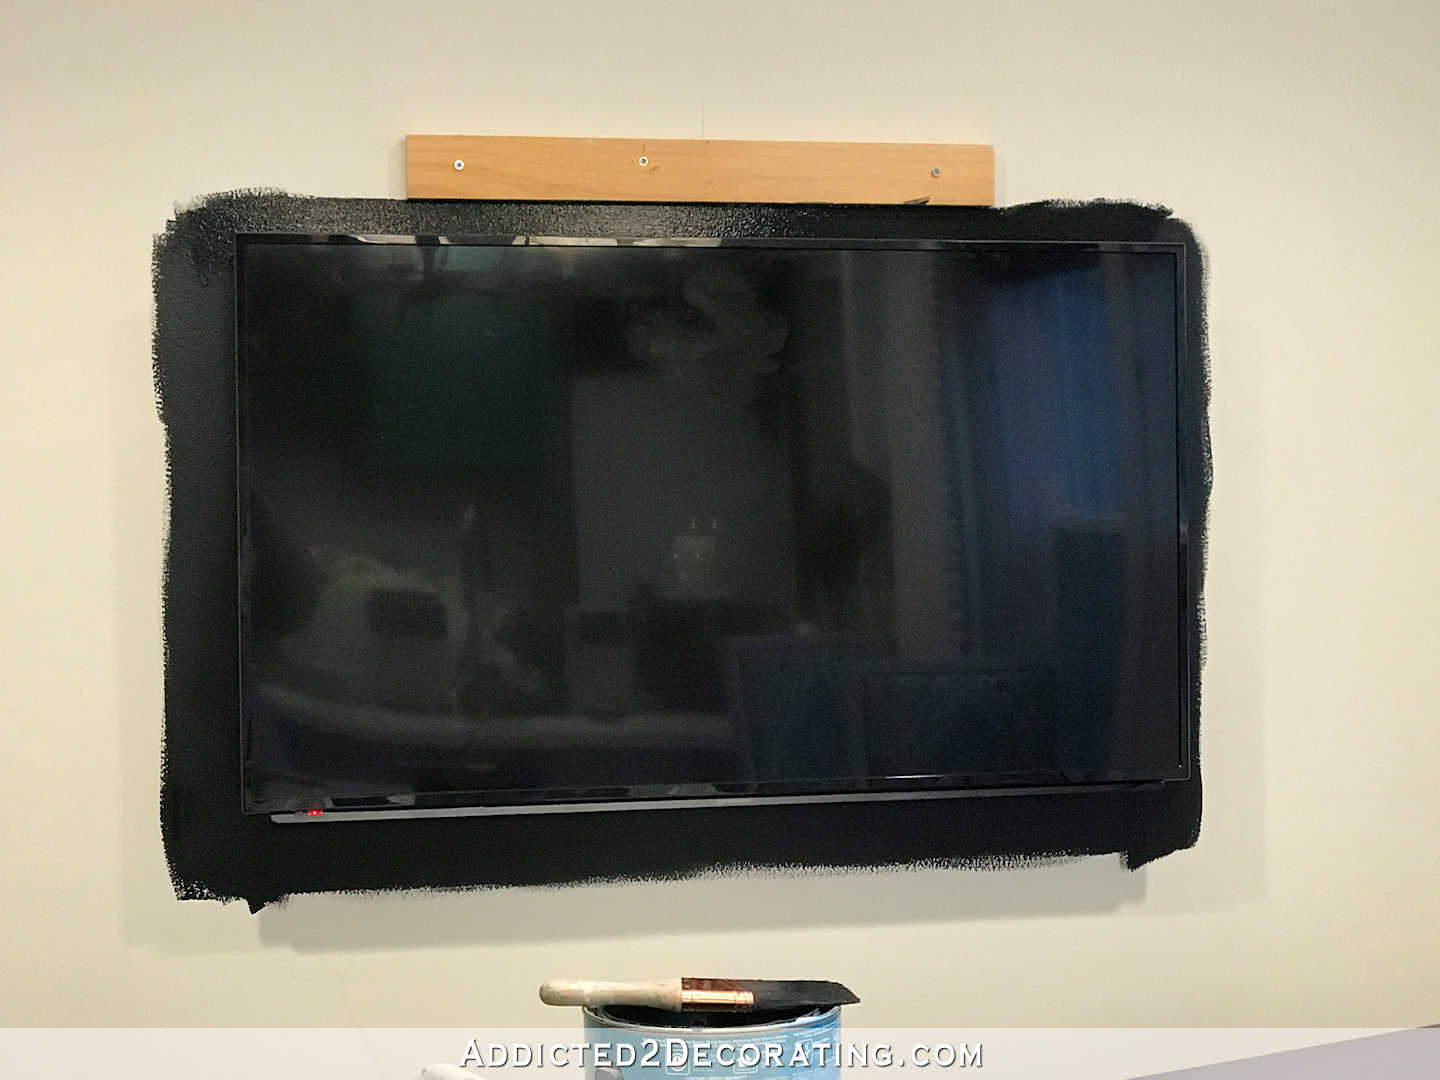 how to build an easy DIY frame for a wall mounted flat screen tv - 17 - attach mounting boards to wall and paint black frame around the tv